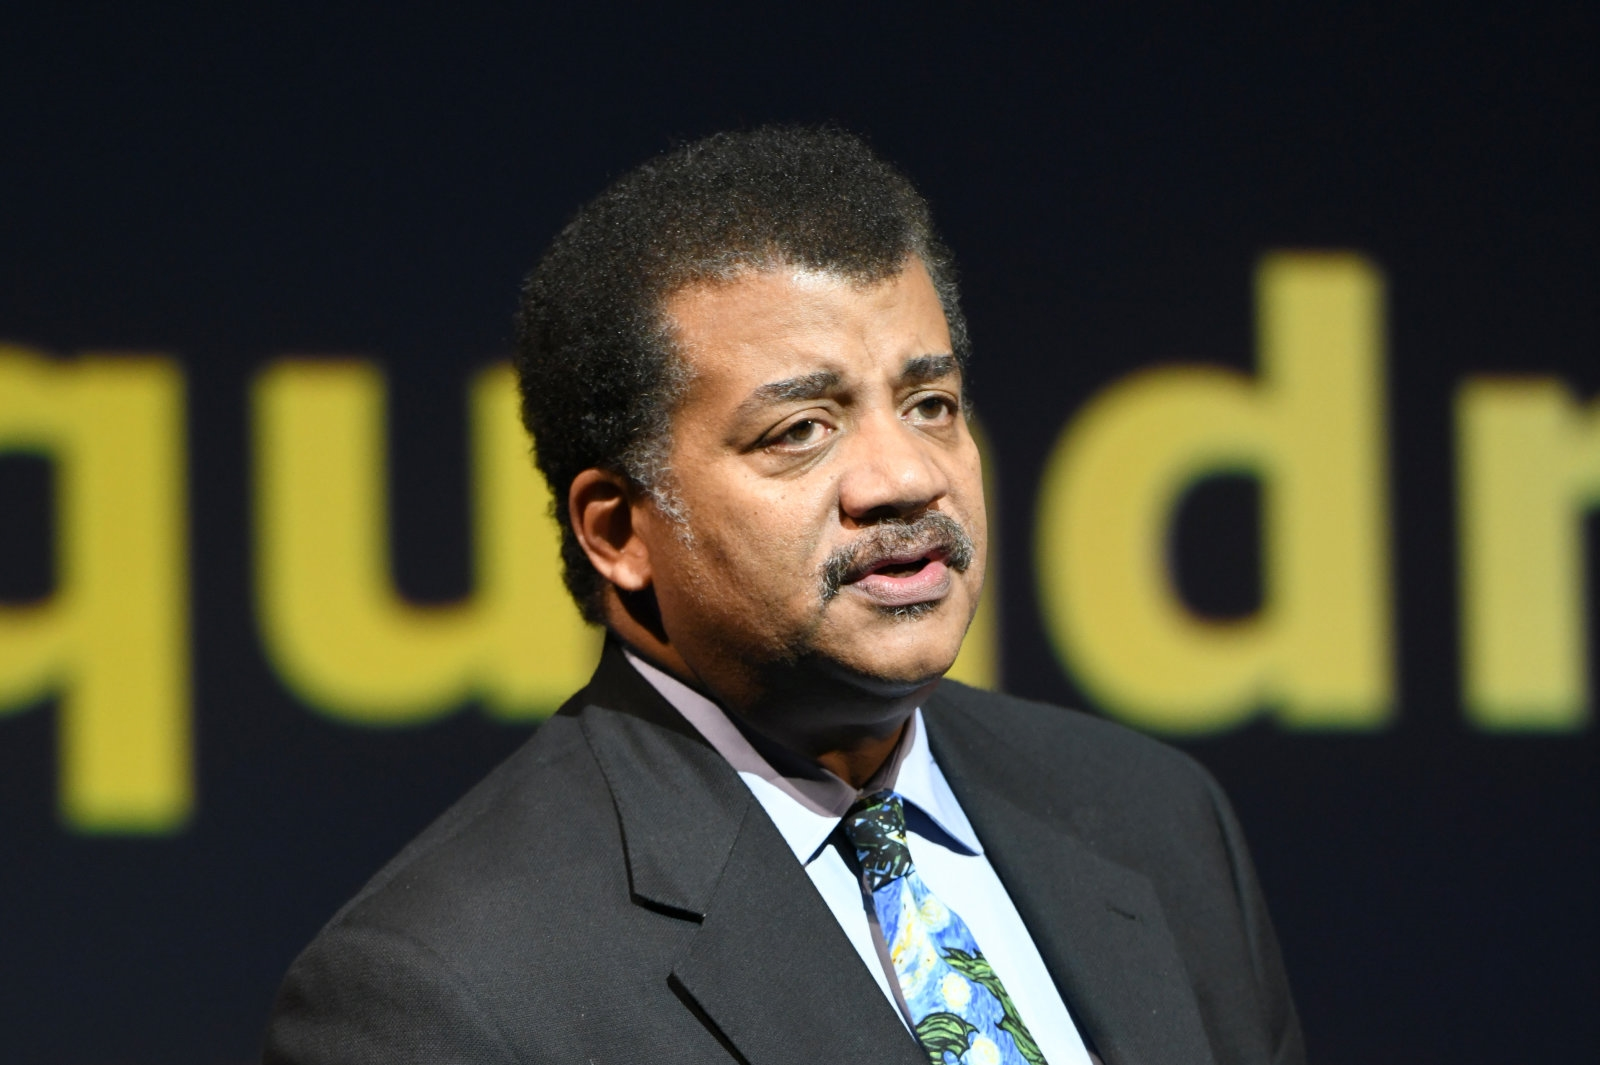 Fox investigates Neil deGrasse Tyson over sexual misconduct claims | DeviceDaily.com